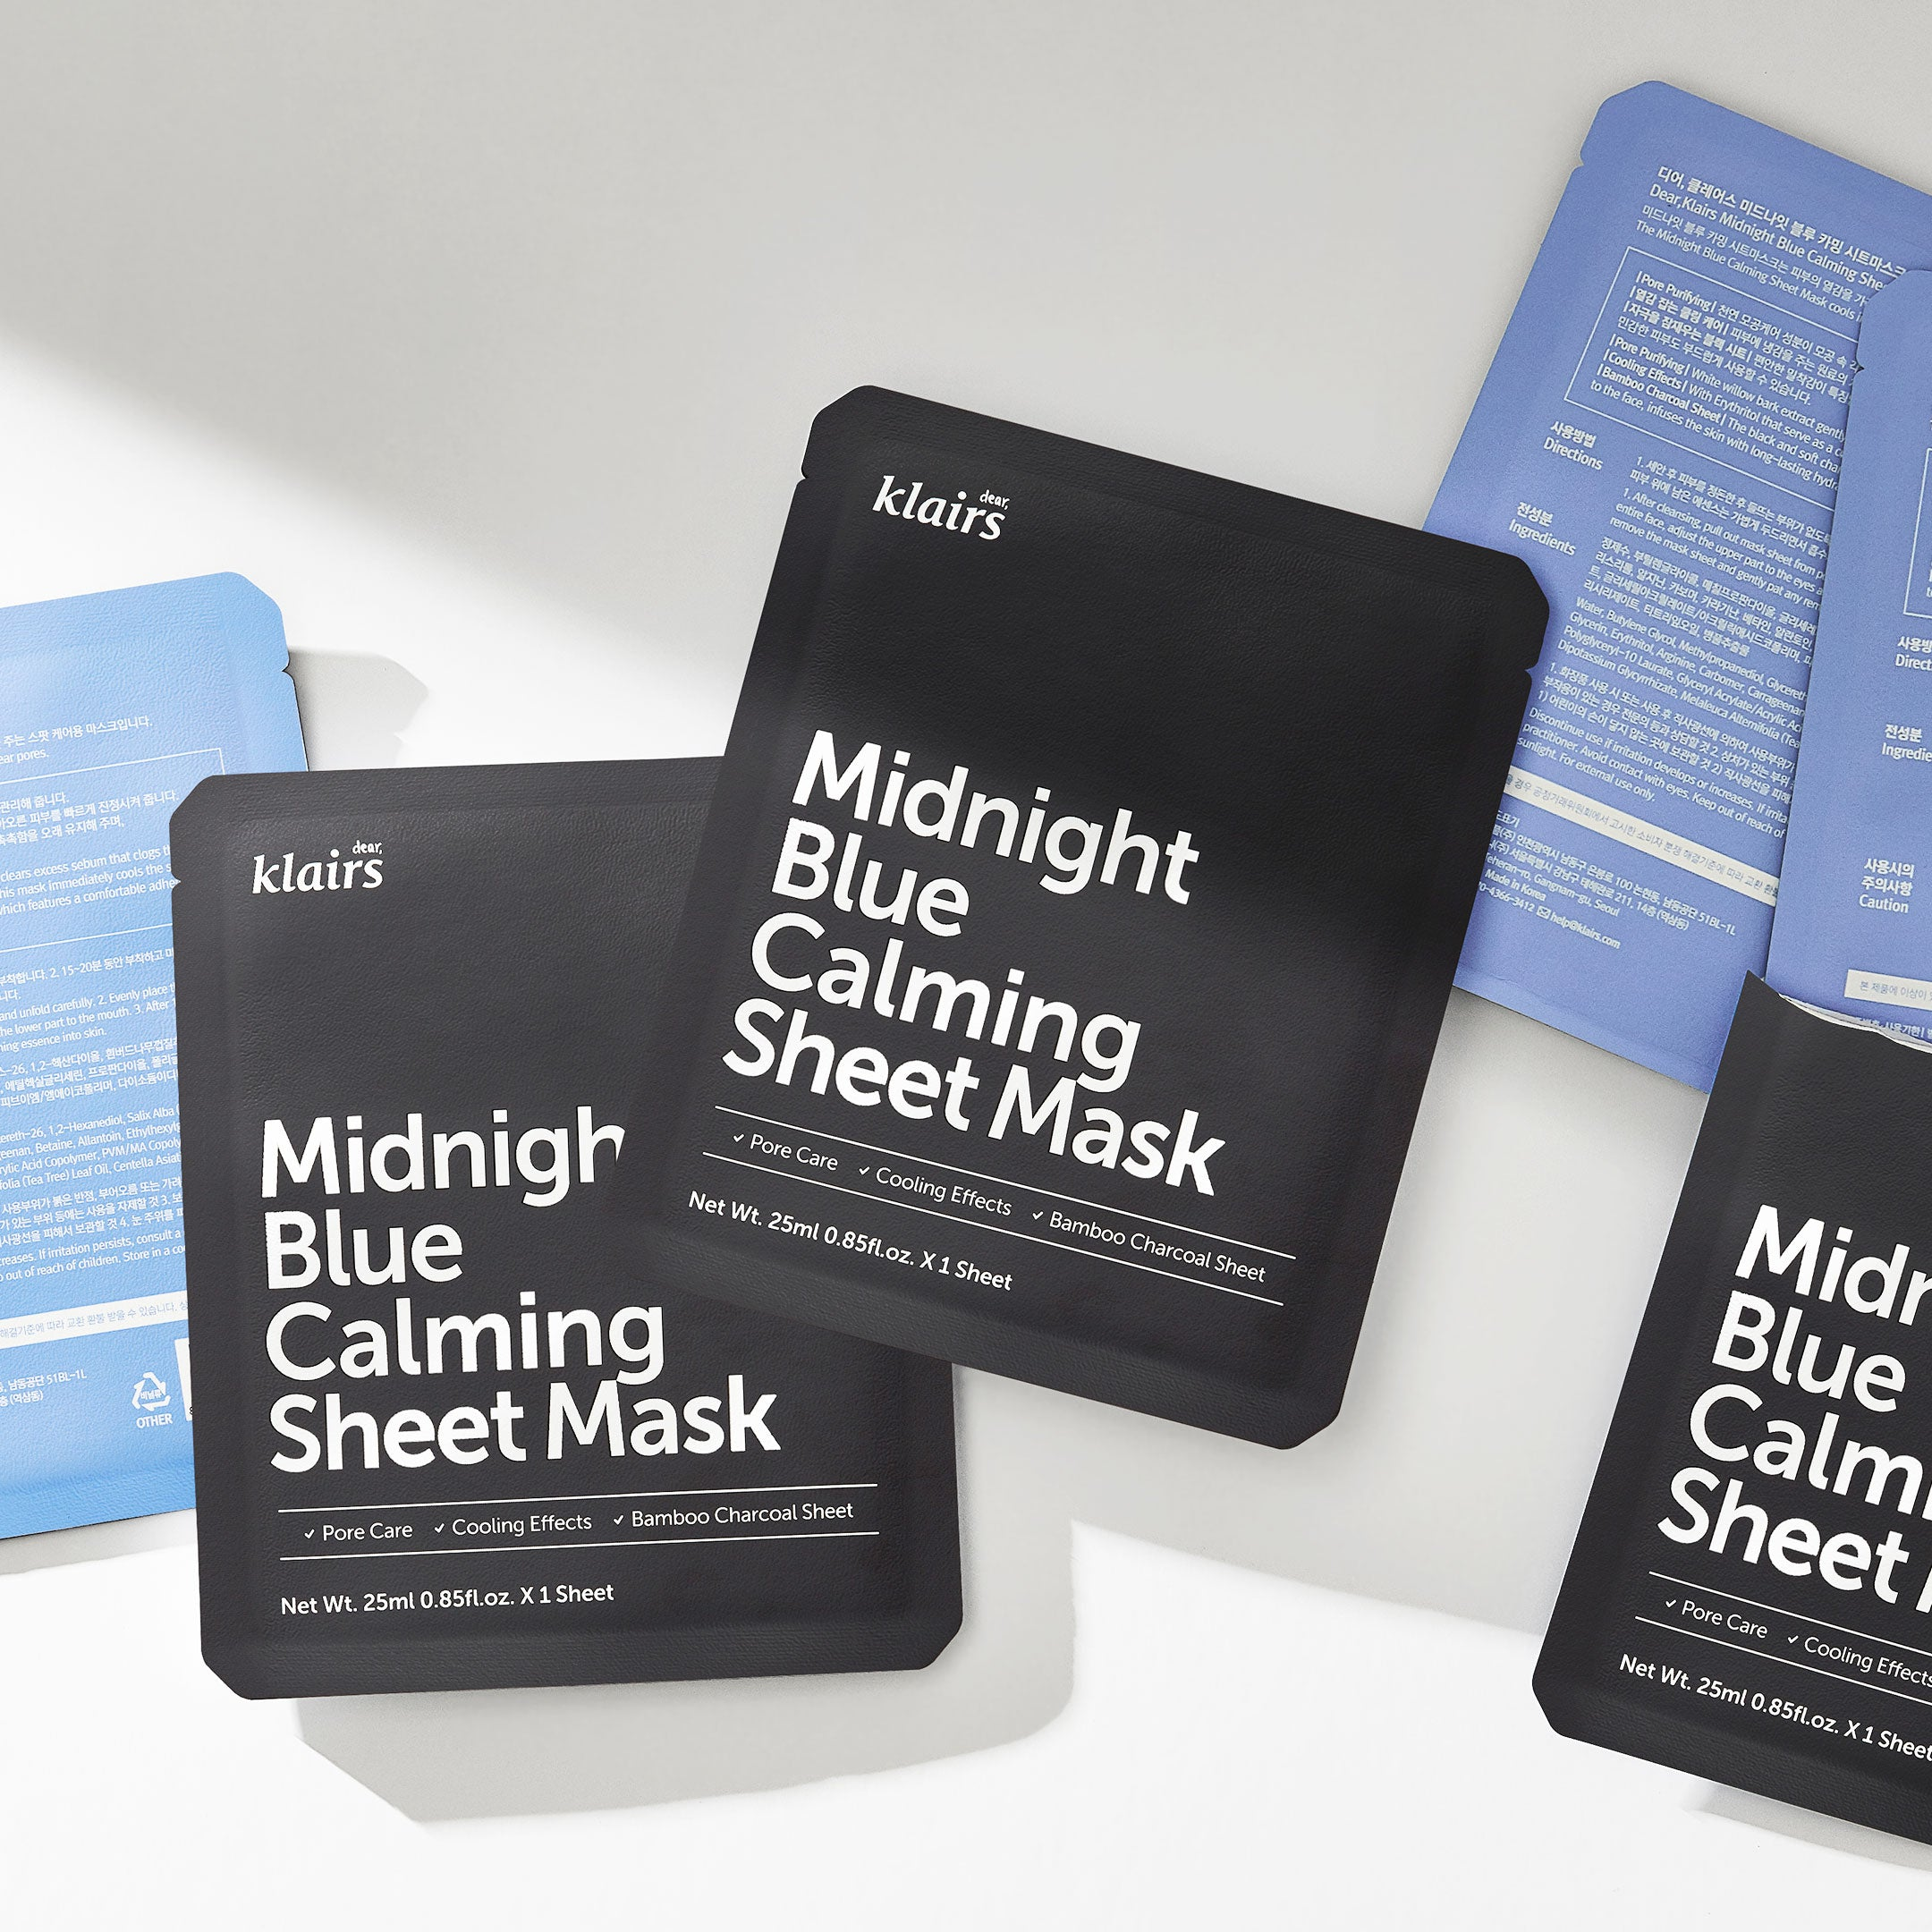 Midnight Blue Calming Sheet Mask by Klairs #4